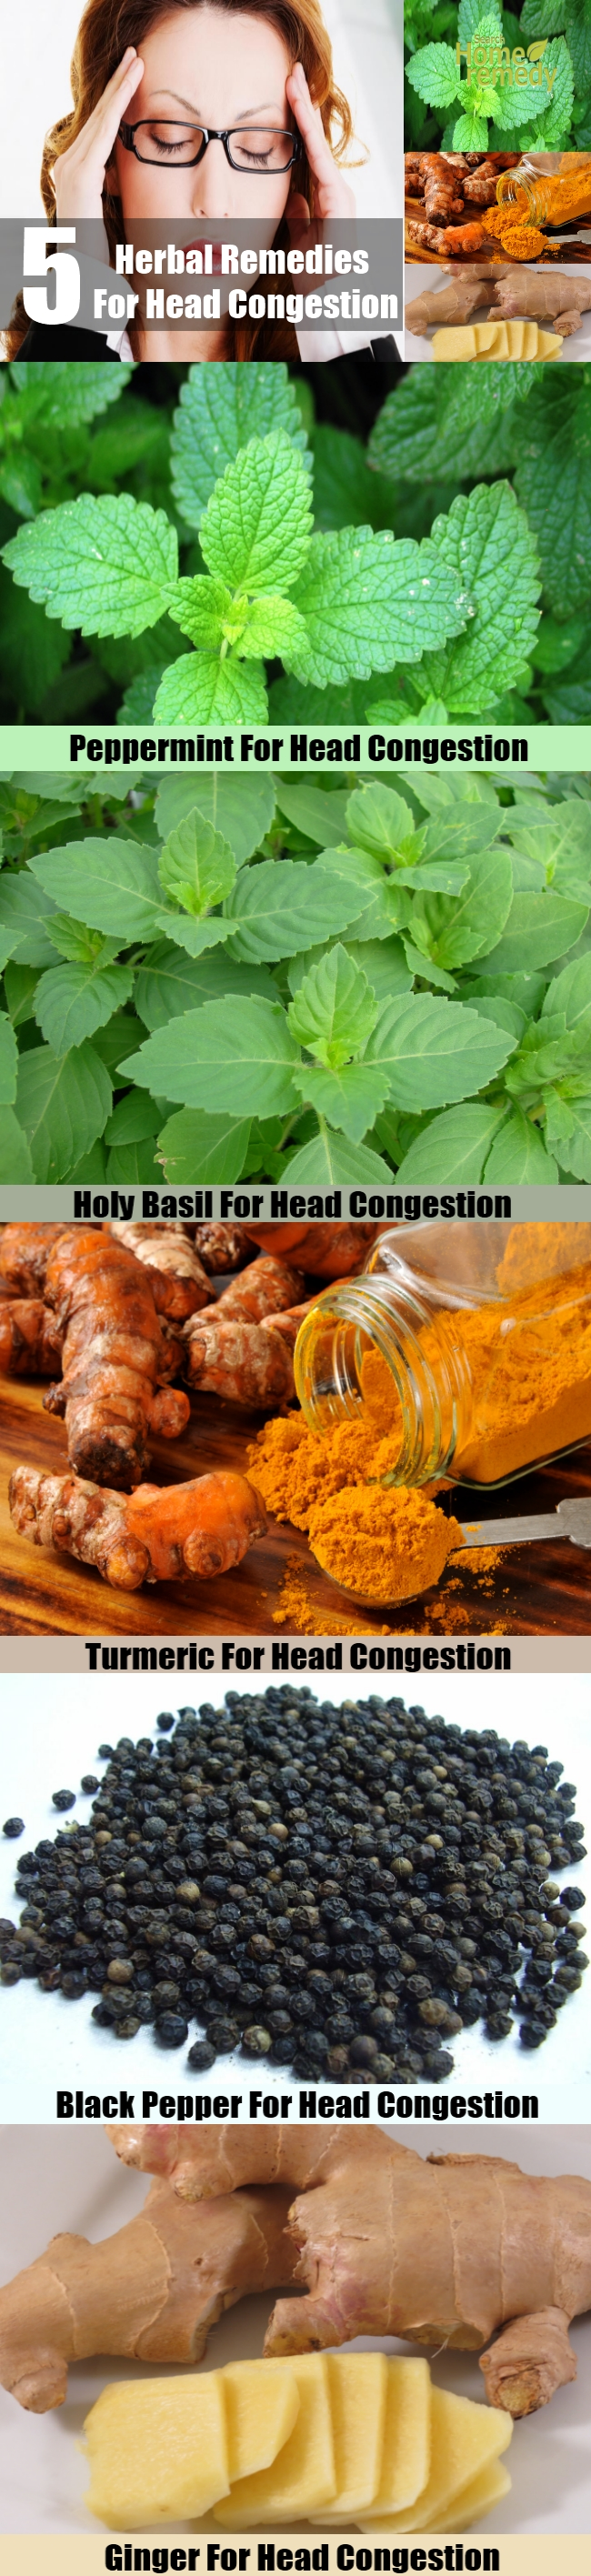 5 Effective Herbal Remedies For Head Congestion